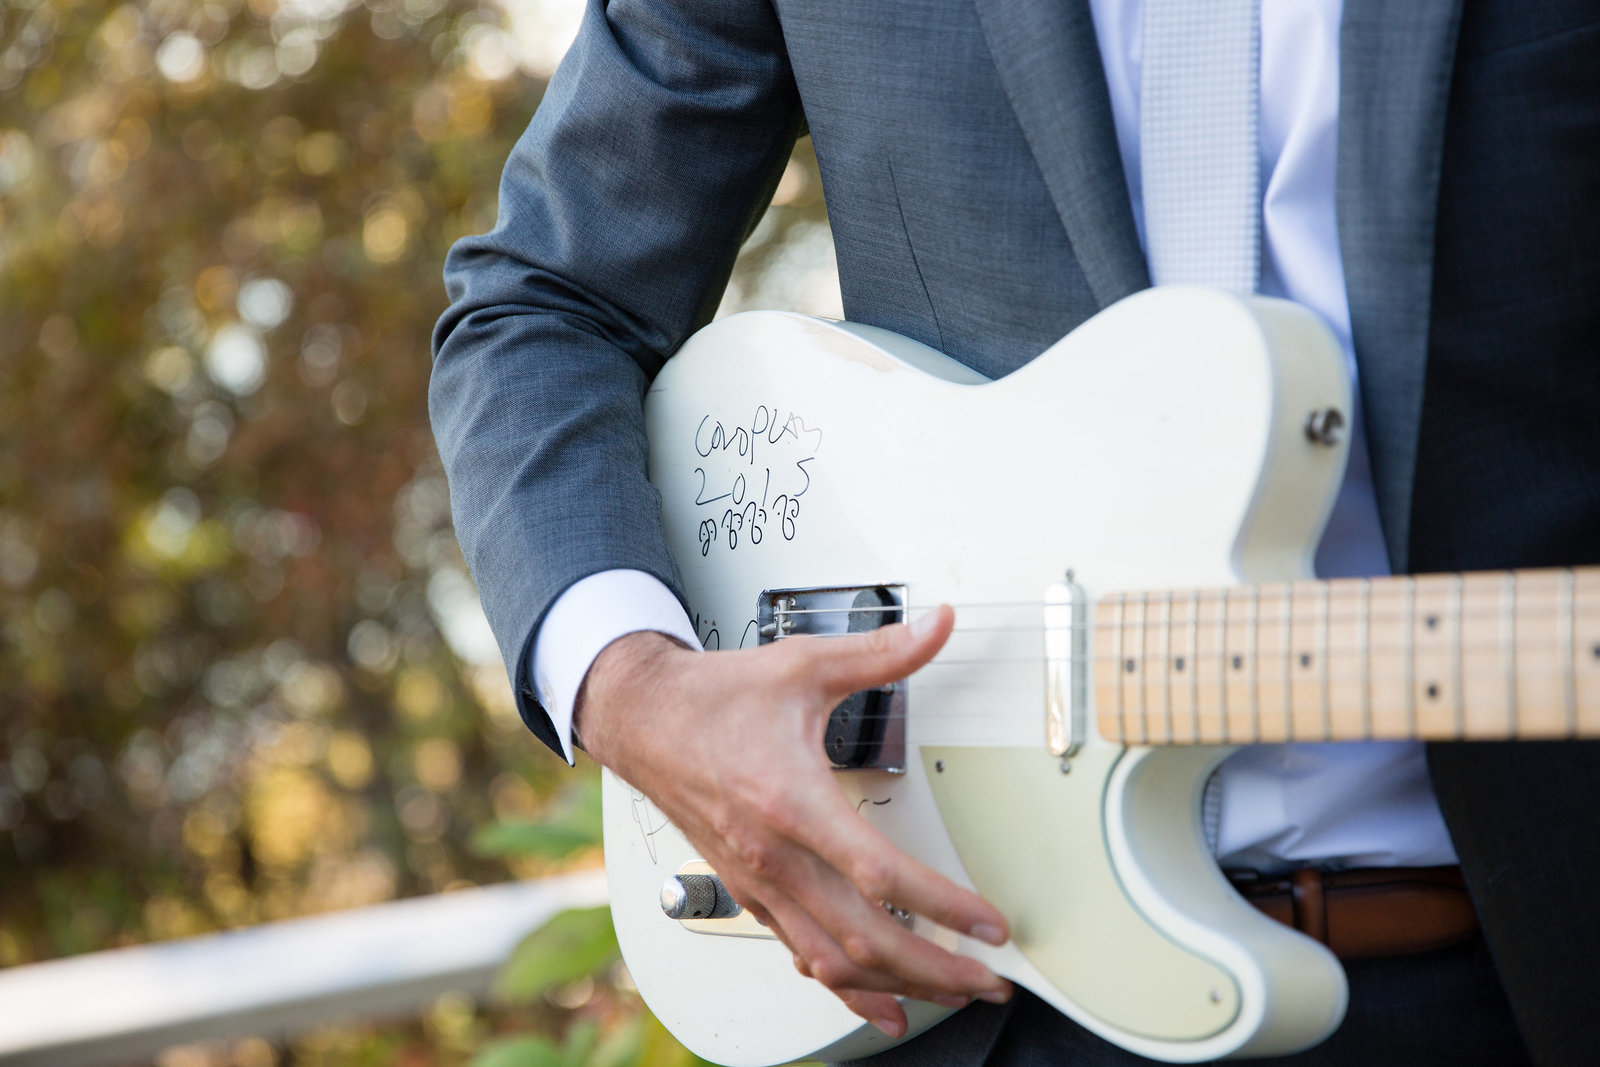 A signed guitar by Chris Martin of Coldplay for Groom